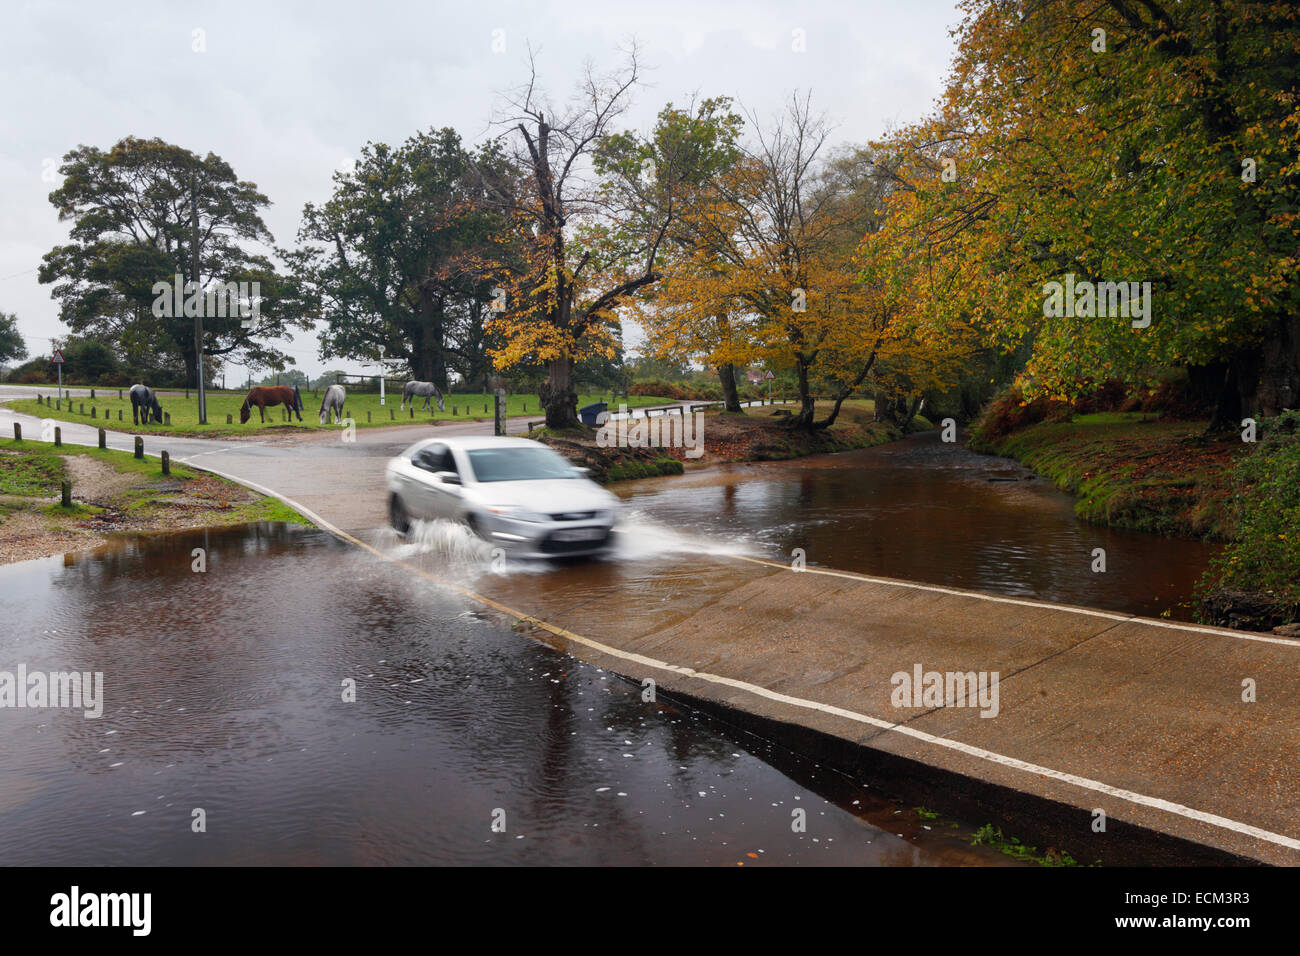 Car crossing Docken's Water Ford. New Forest National Park. Hampshire. UK. - Stock Image